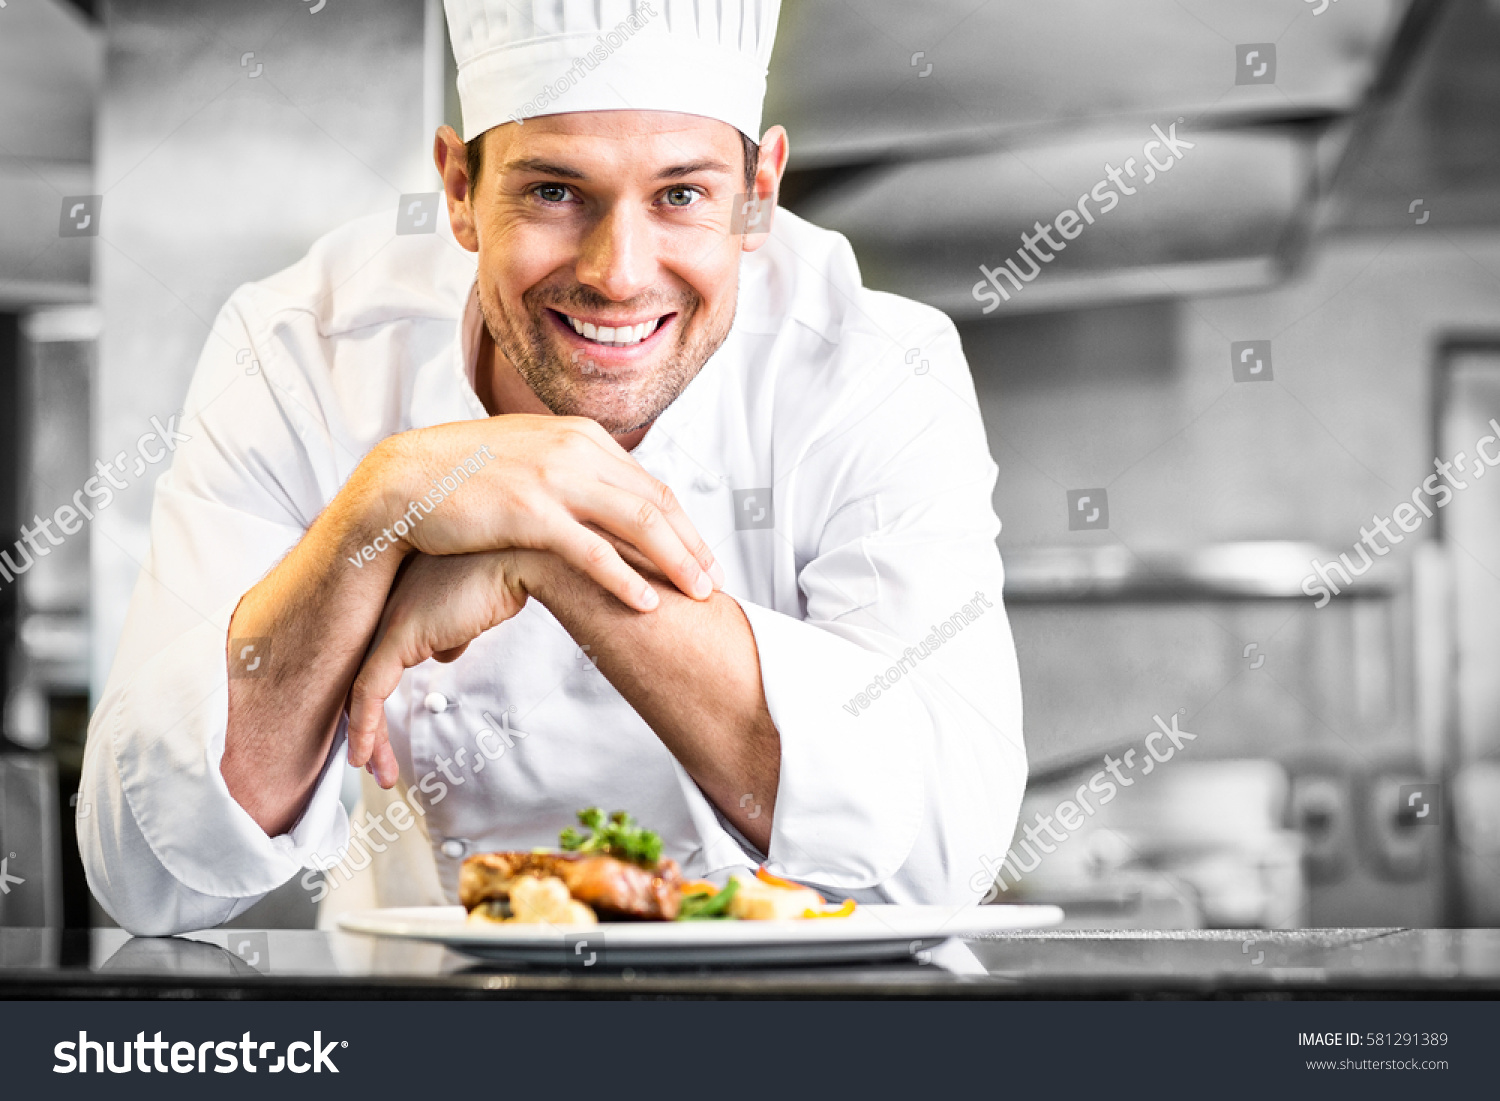 Portrait Smiling Male Chef Cooked Food Stock Photo (Download Now ...